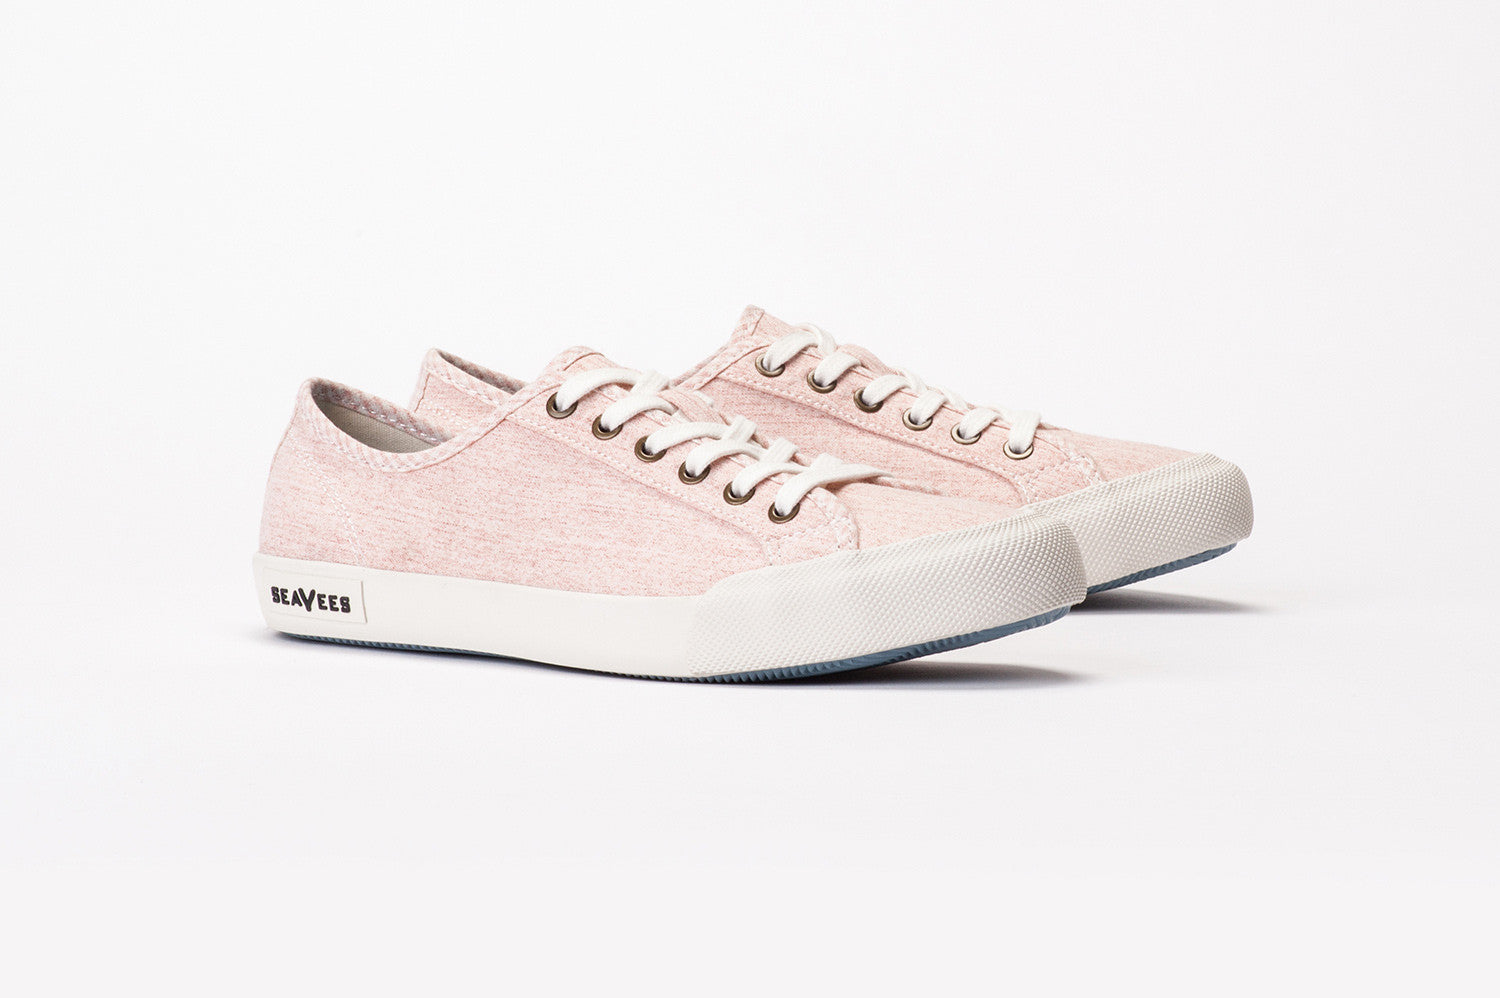 Womens - Monterey Sneaker Beach Club - Pale Pink